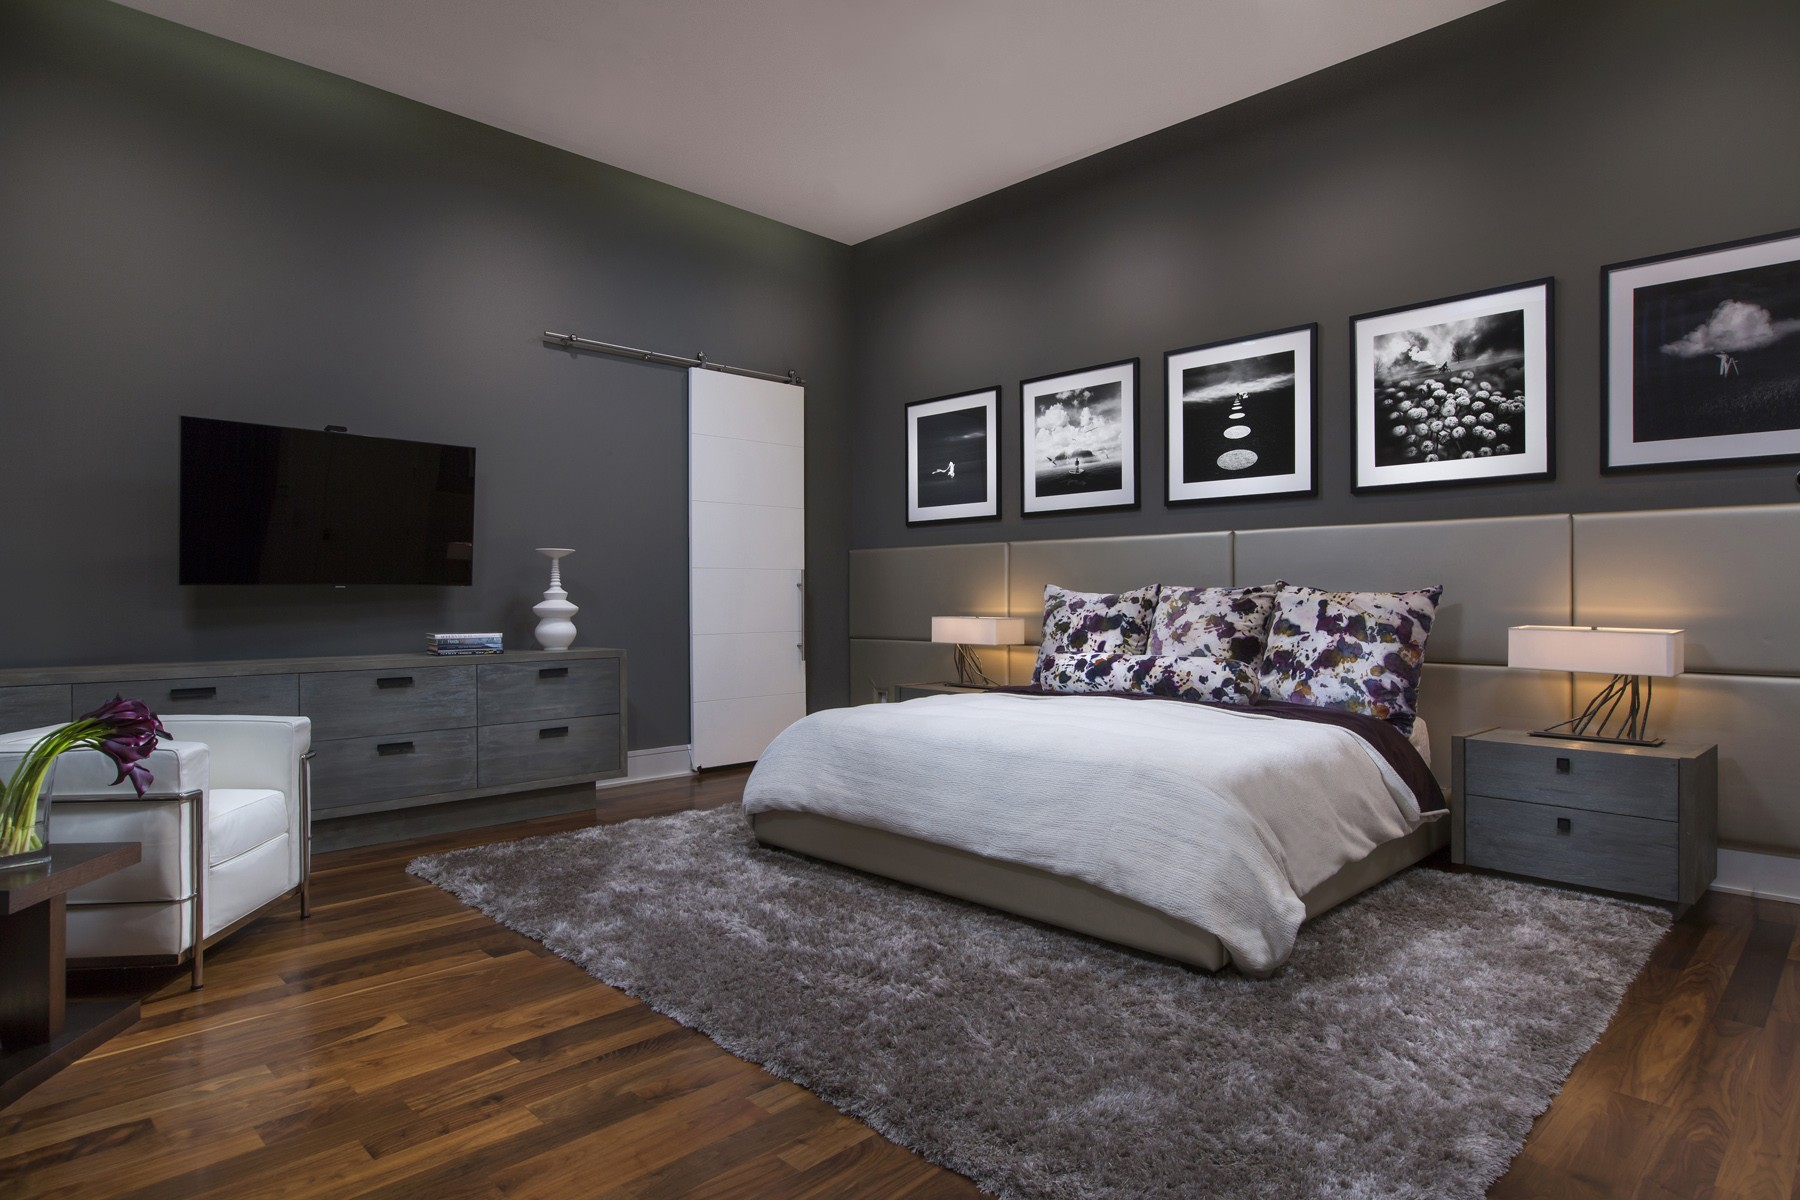 Modena custom residence phil kean design group - Master bedroom and bathroom paint colors ...